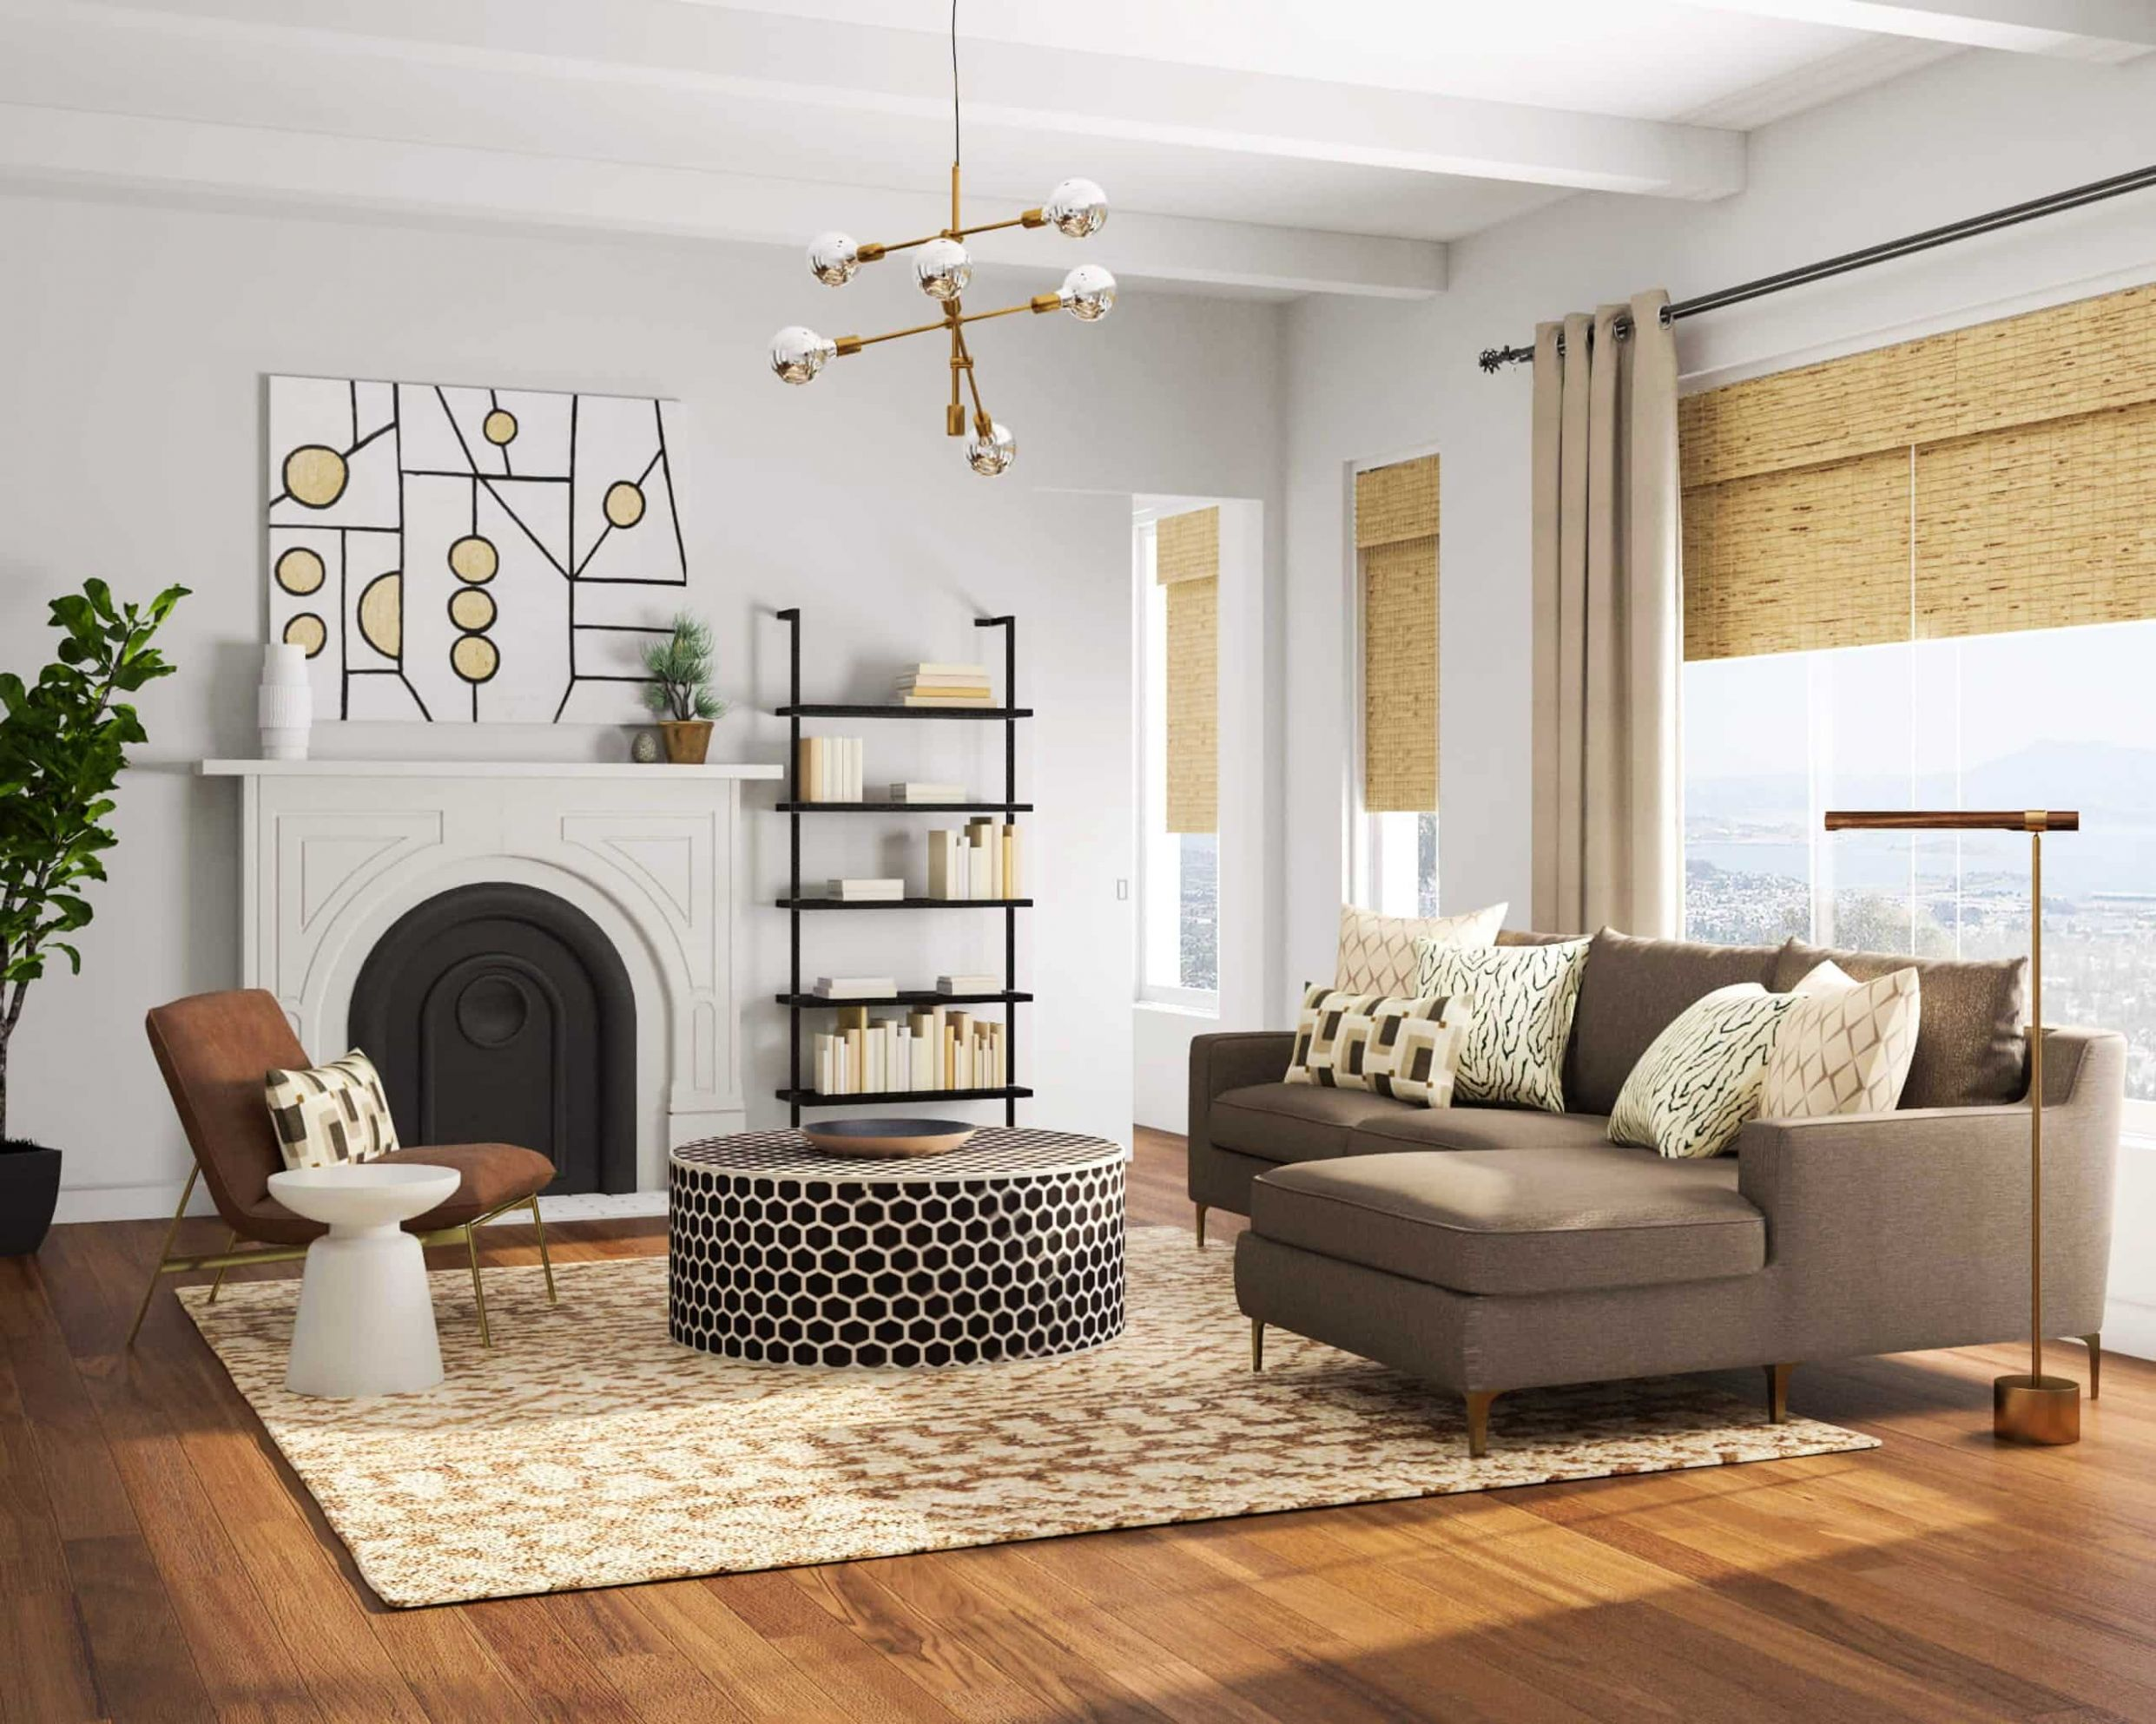 Online Interior Design with Modsy | Living Rooms, Dining Rooms ..